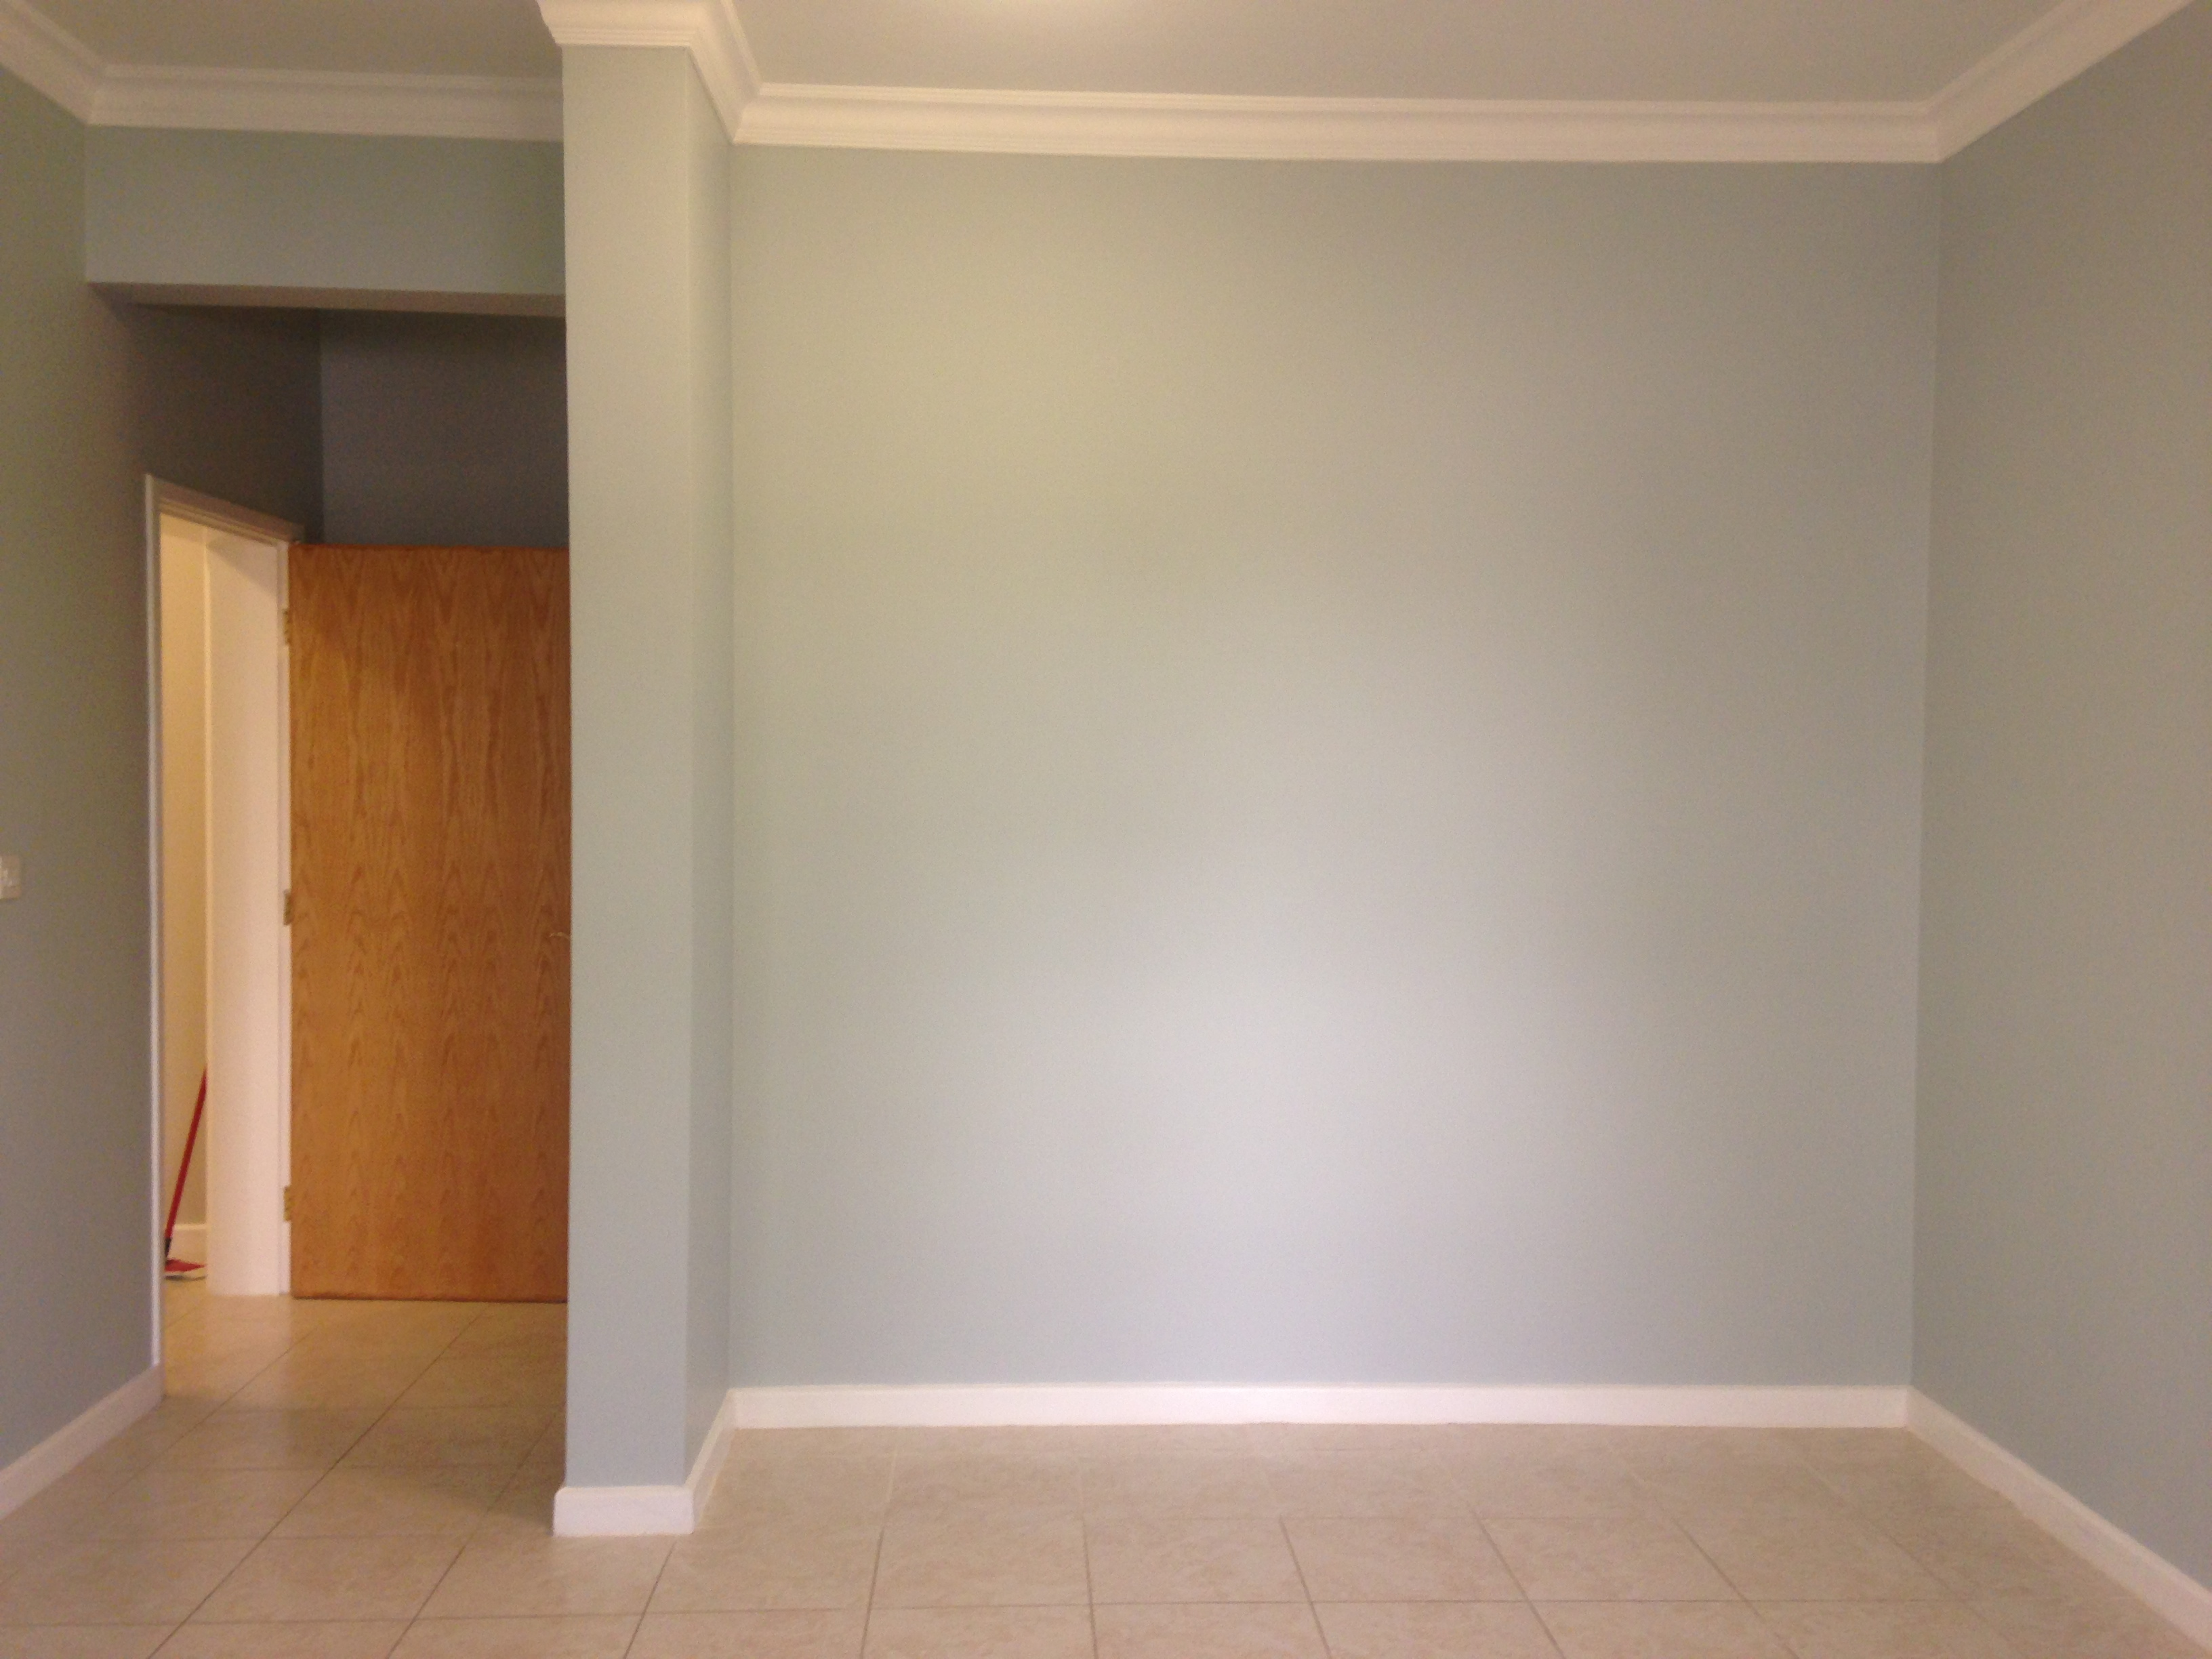 Img for What to do with a blank wall